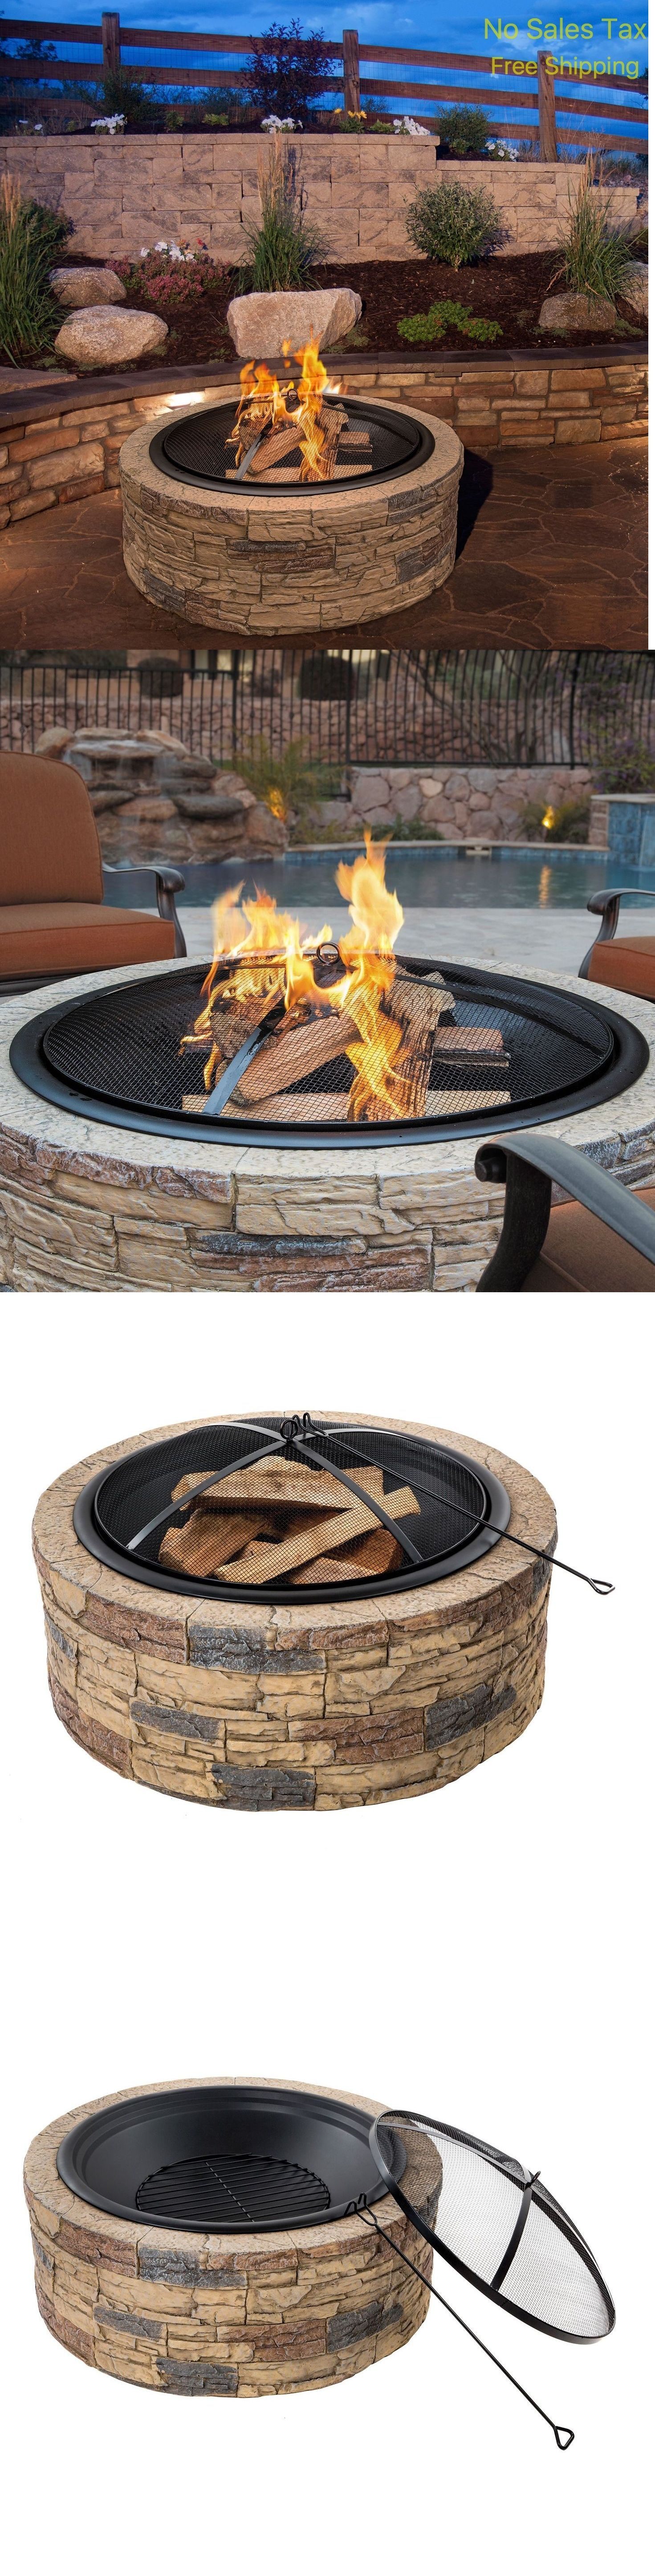 552e75343f4059665444dfd4c702fb7f Top Result 50 Awesome Table Fire Bowl Photos 2018 Gst3